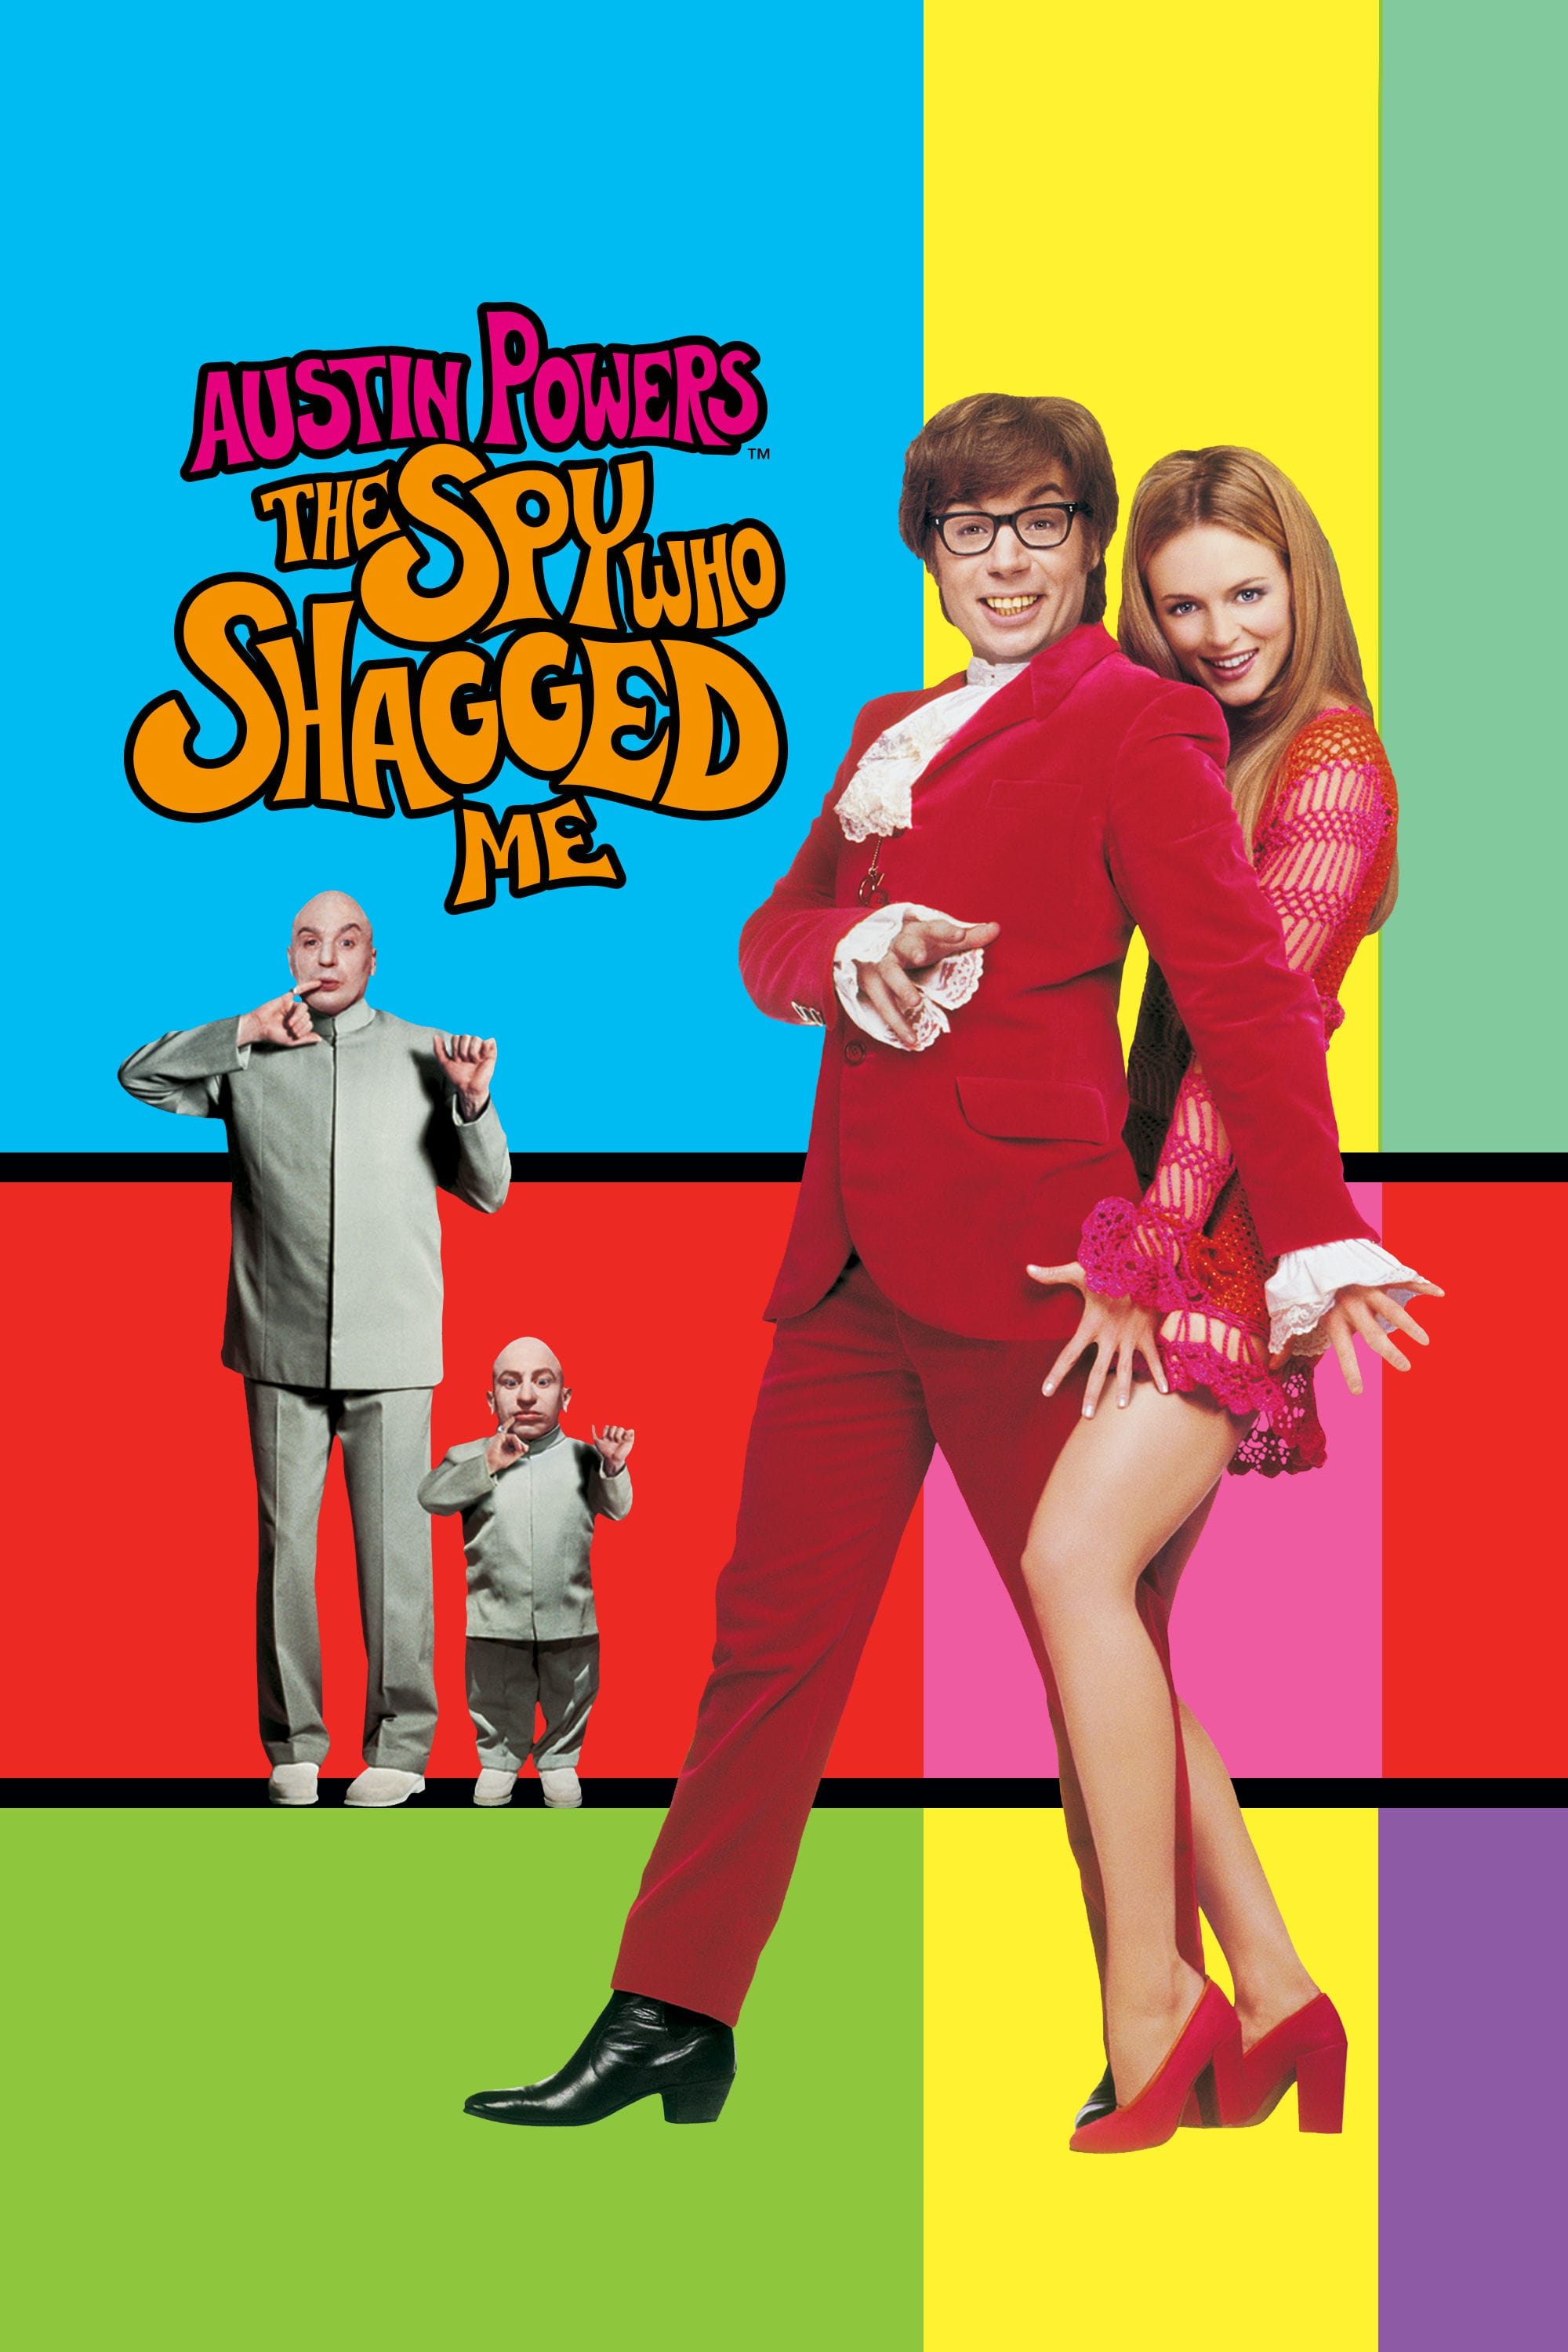 austin-powers-the-spy-who-shagged-me-filming-locations-poster